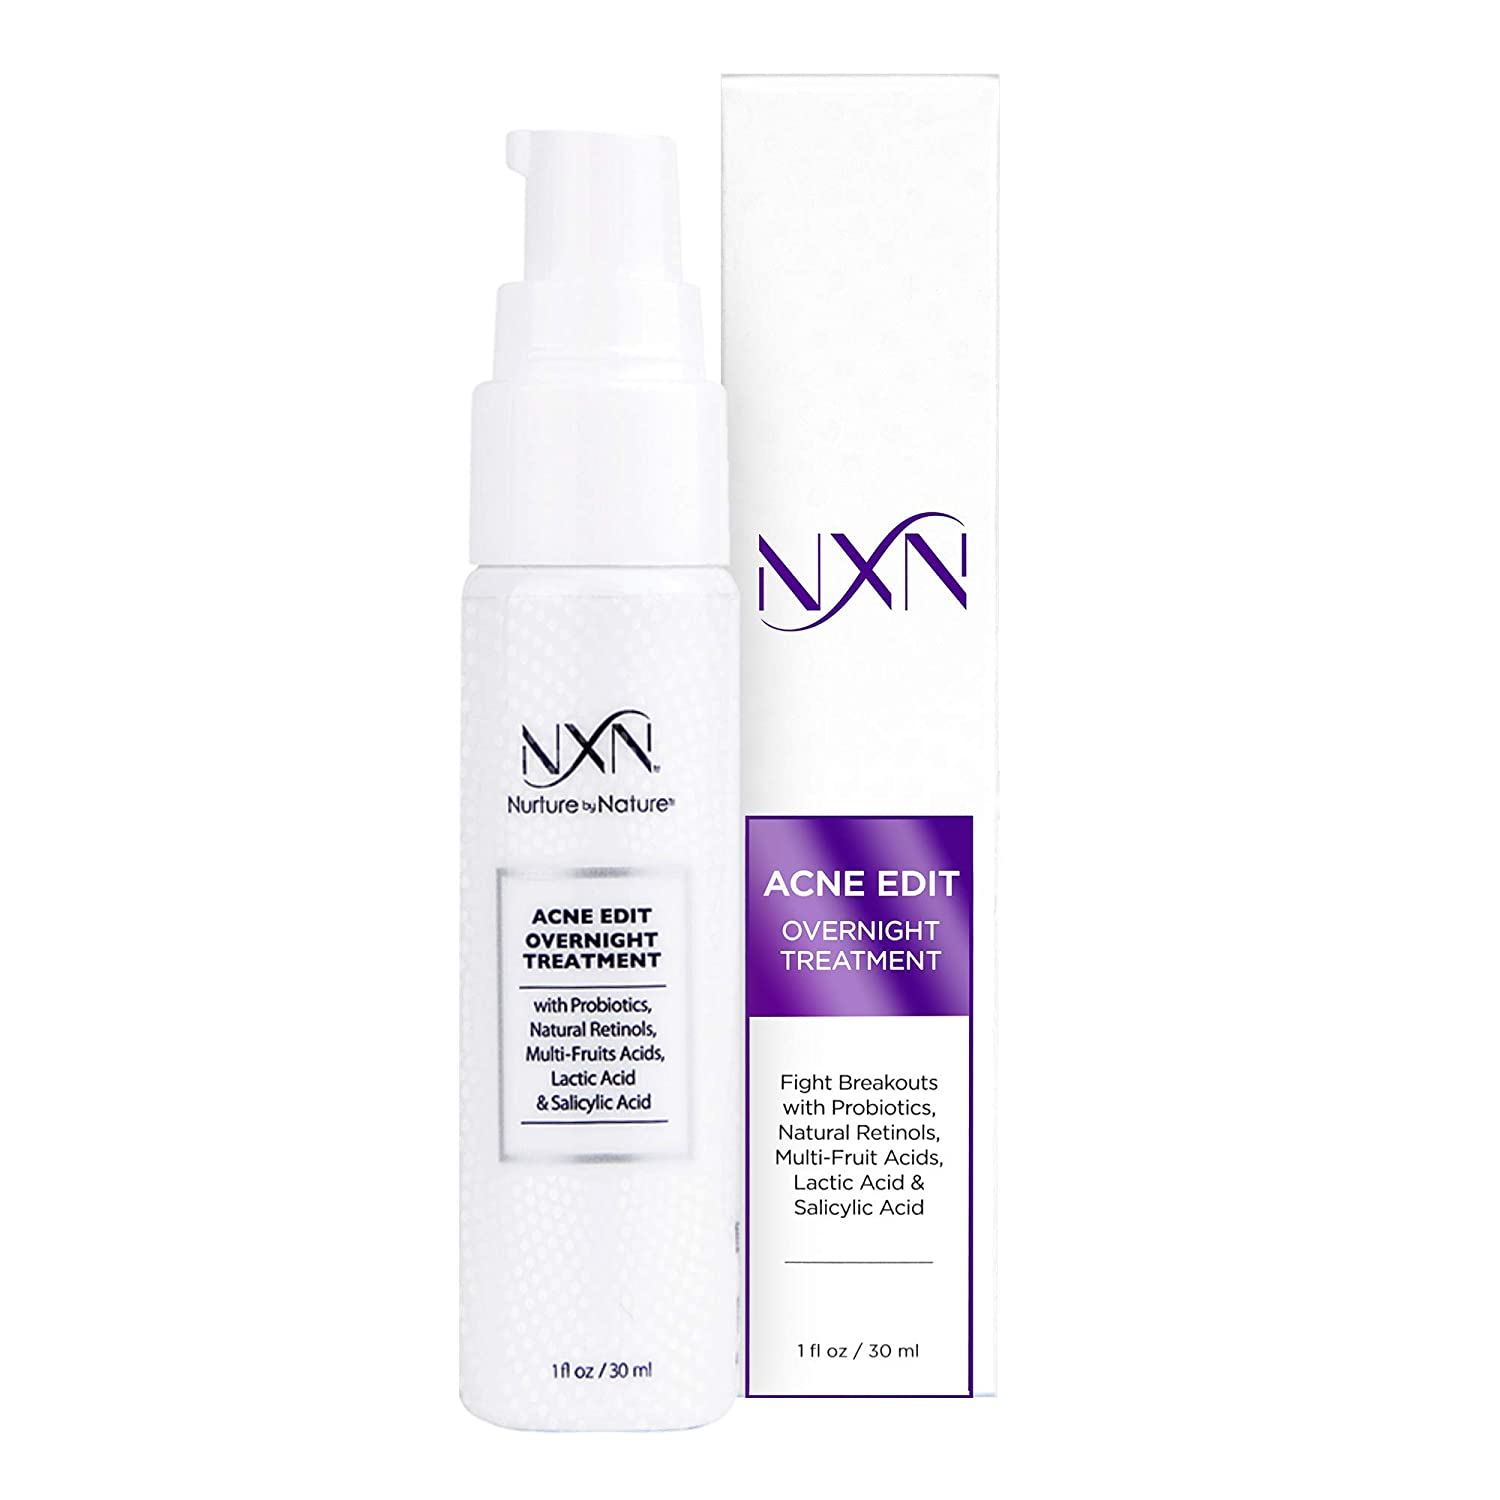 NxN Acne Edit Overnight Treatment Cream with Glycolic, Salicylic, Lactic Acids & Probiotics to Clear Breakouts & Calm Redness - for Men, Women, Teens